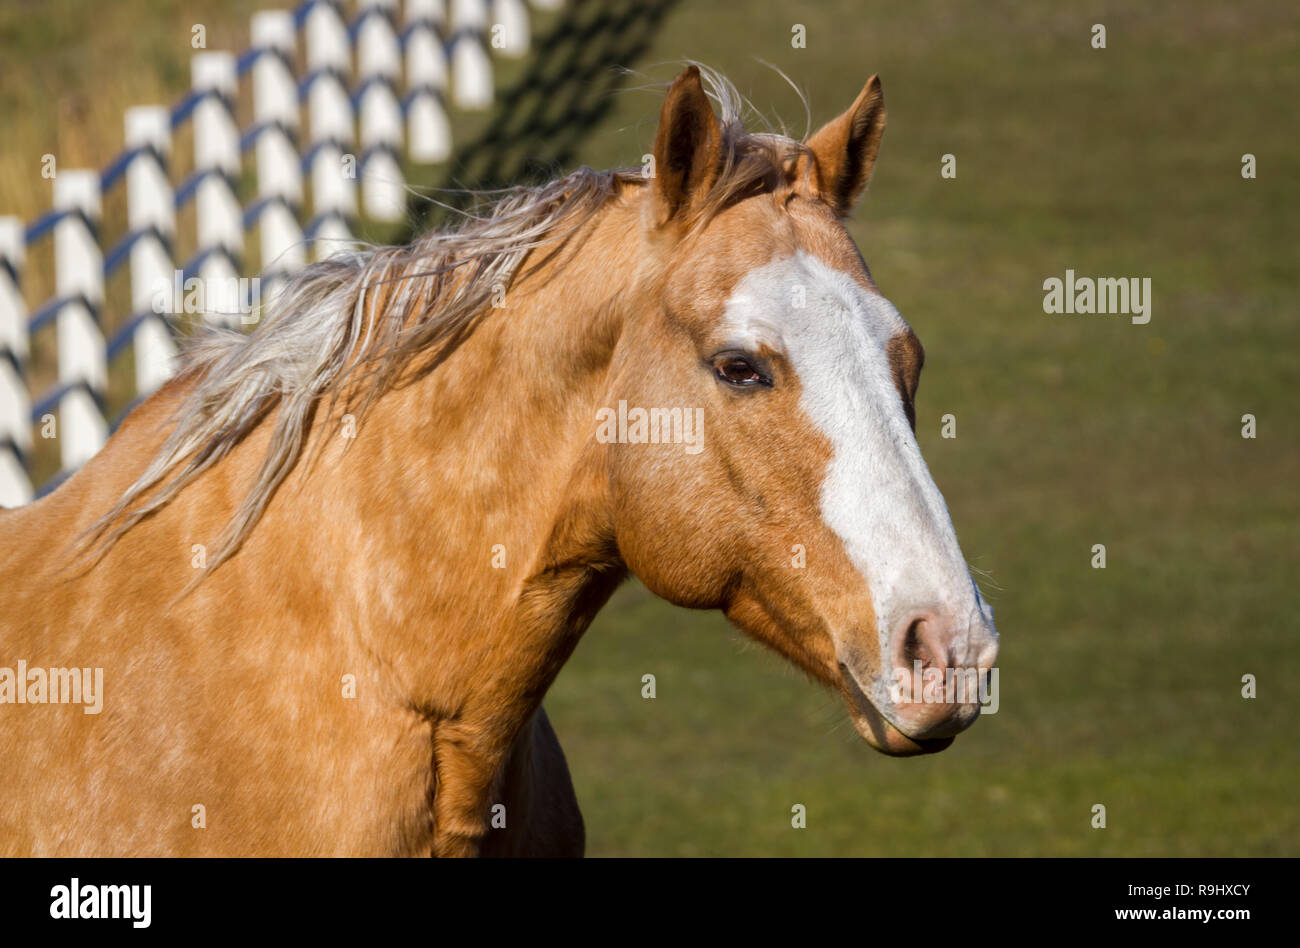 Beautiful Light Brown Horse Side View With Face Lots Of White Prominent Fence Behind In Ranching Country In Fall Rural Alberta Canada Stock Photo Alamy